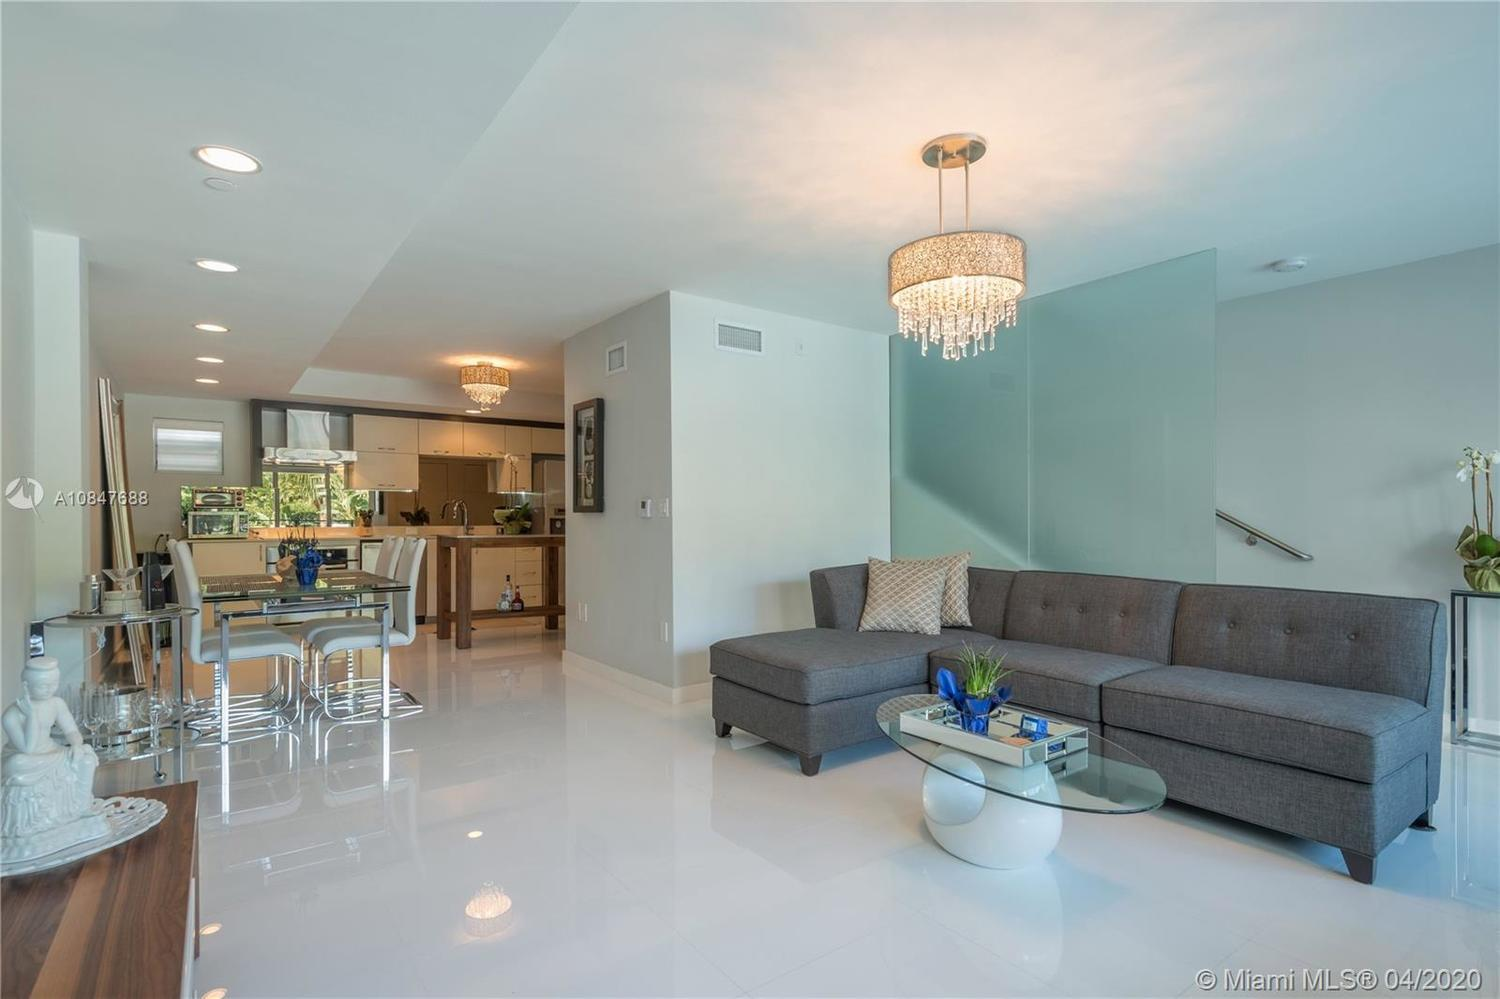 2135 Washington Court, Unit TH6 Miami Beach, FL 33139